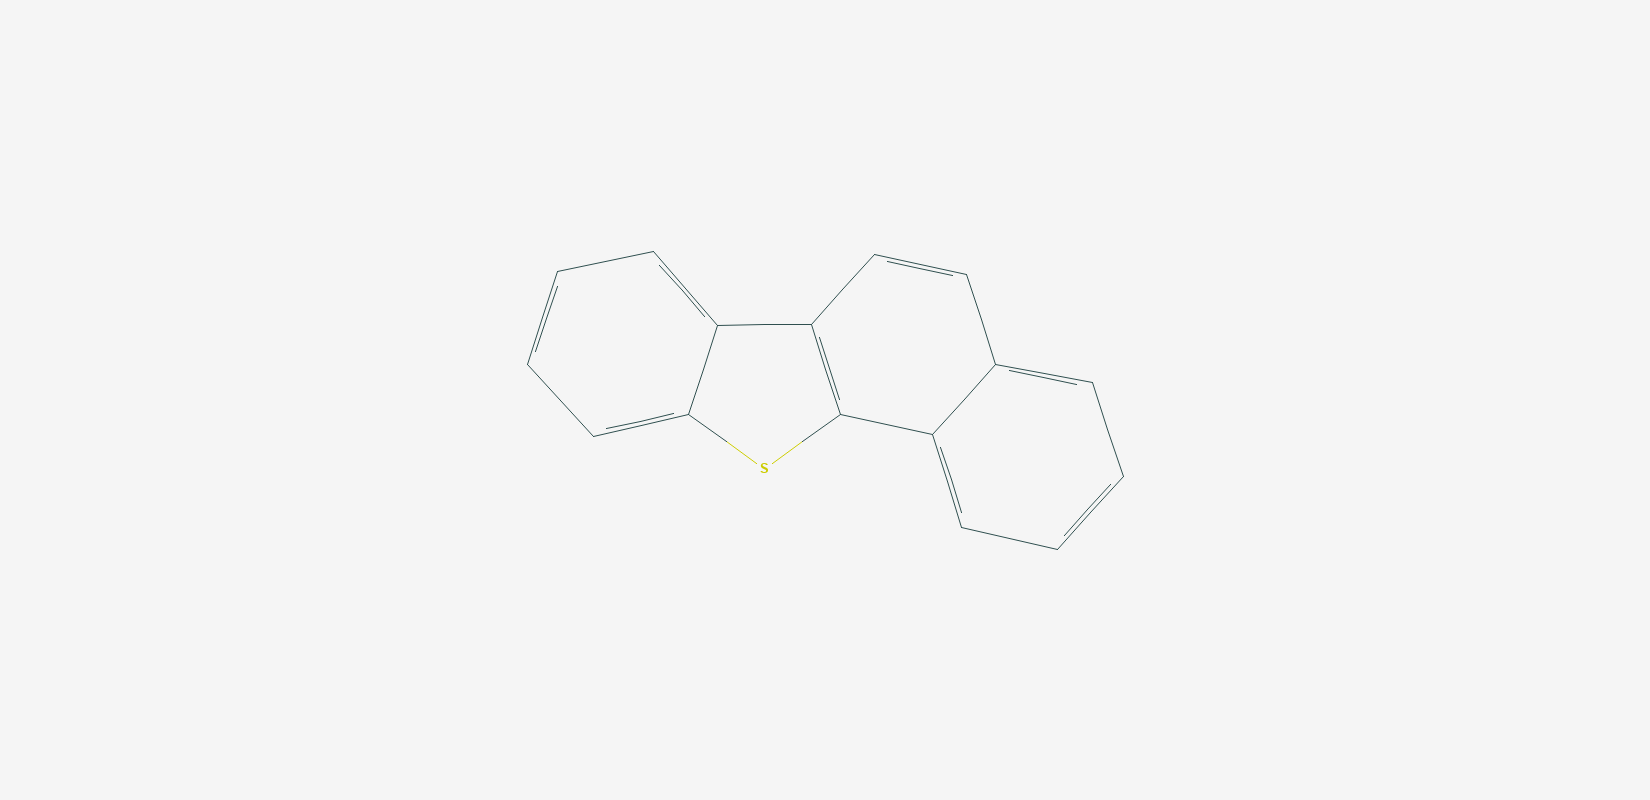 Structure of benzo[b]naphtho[1,2-d]thiophene